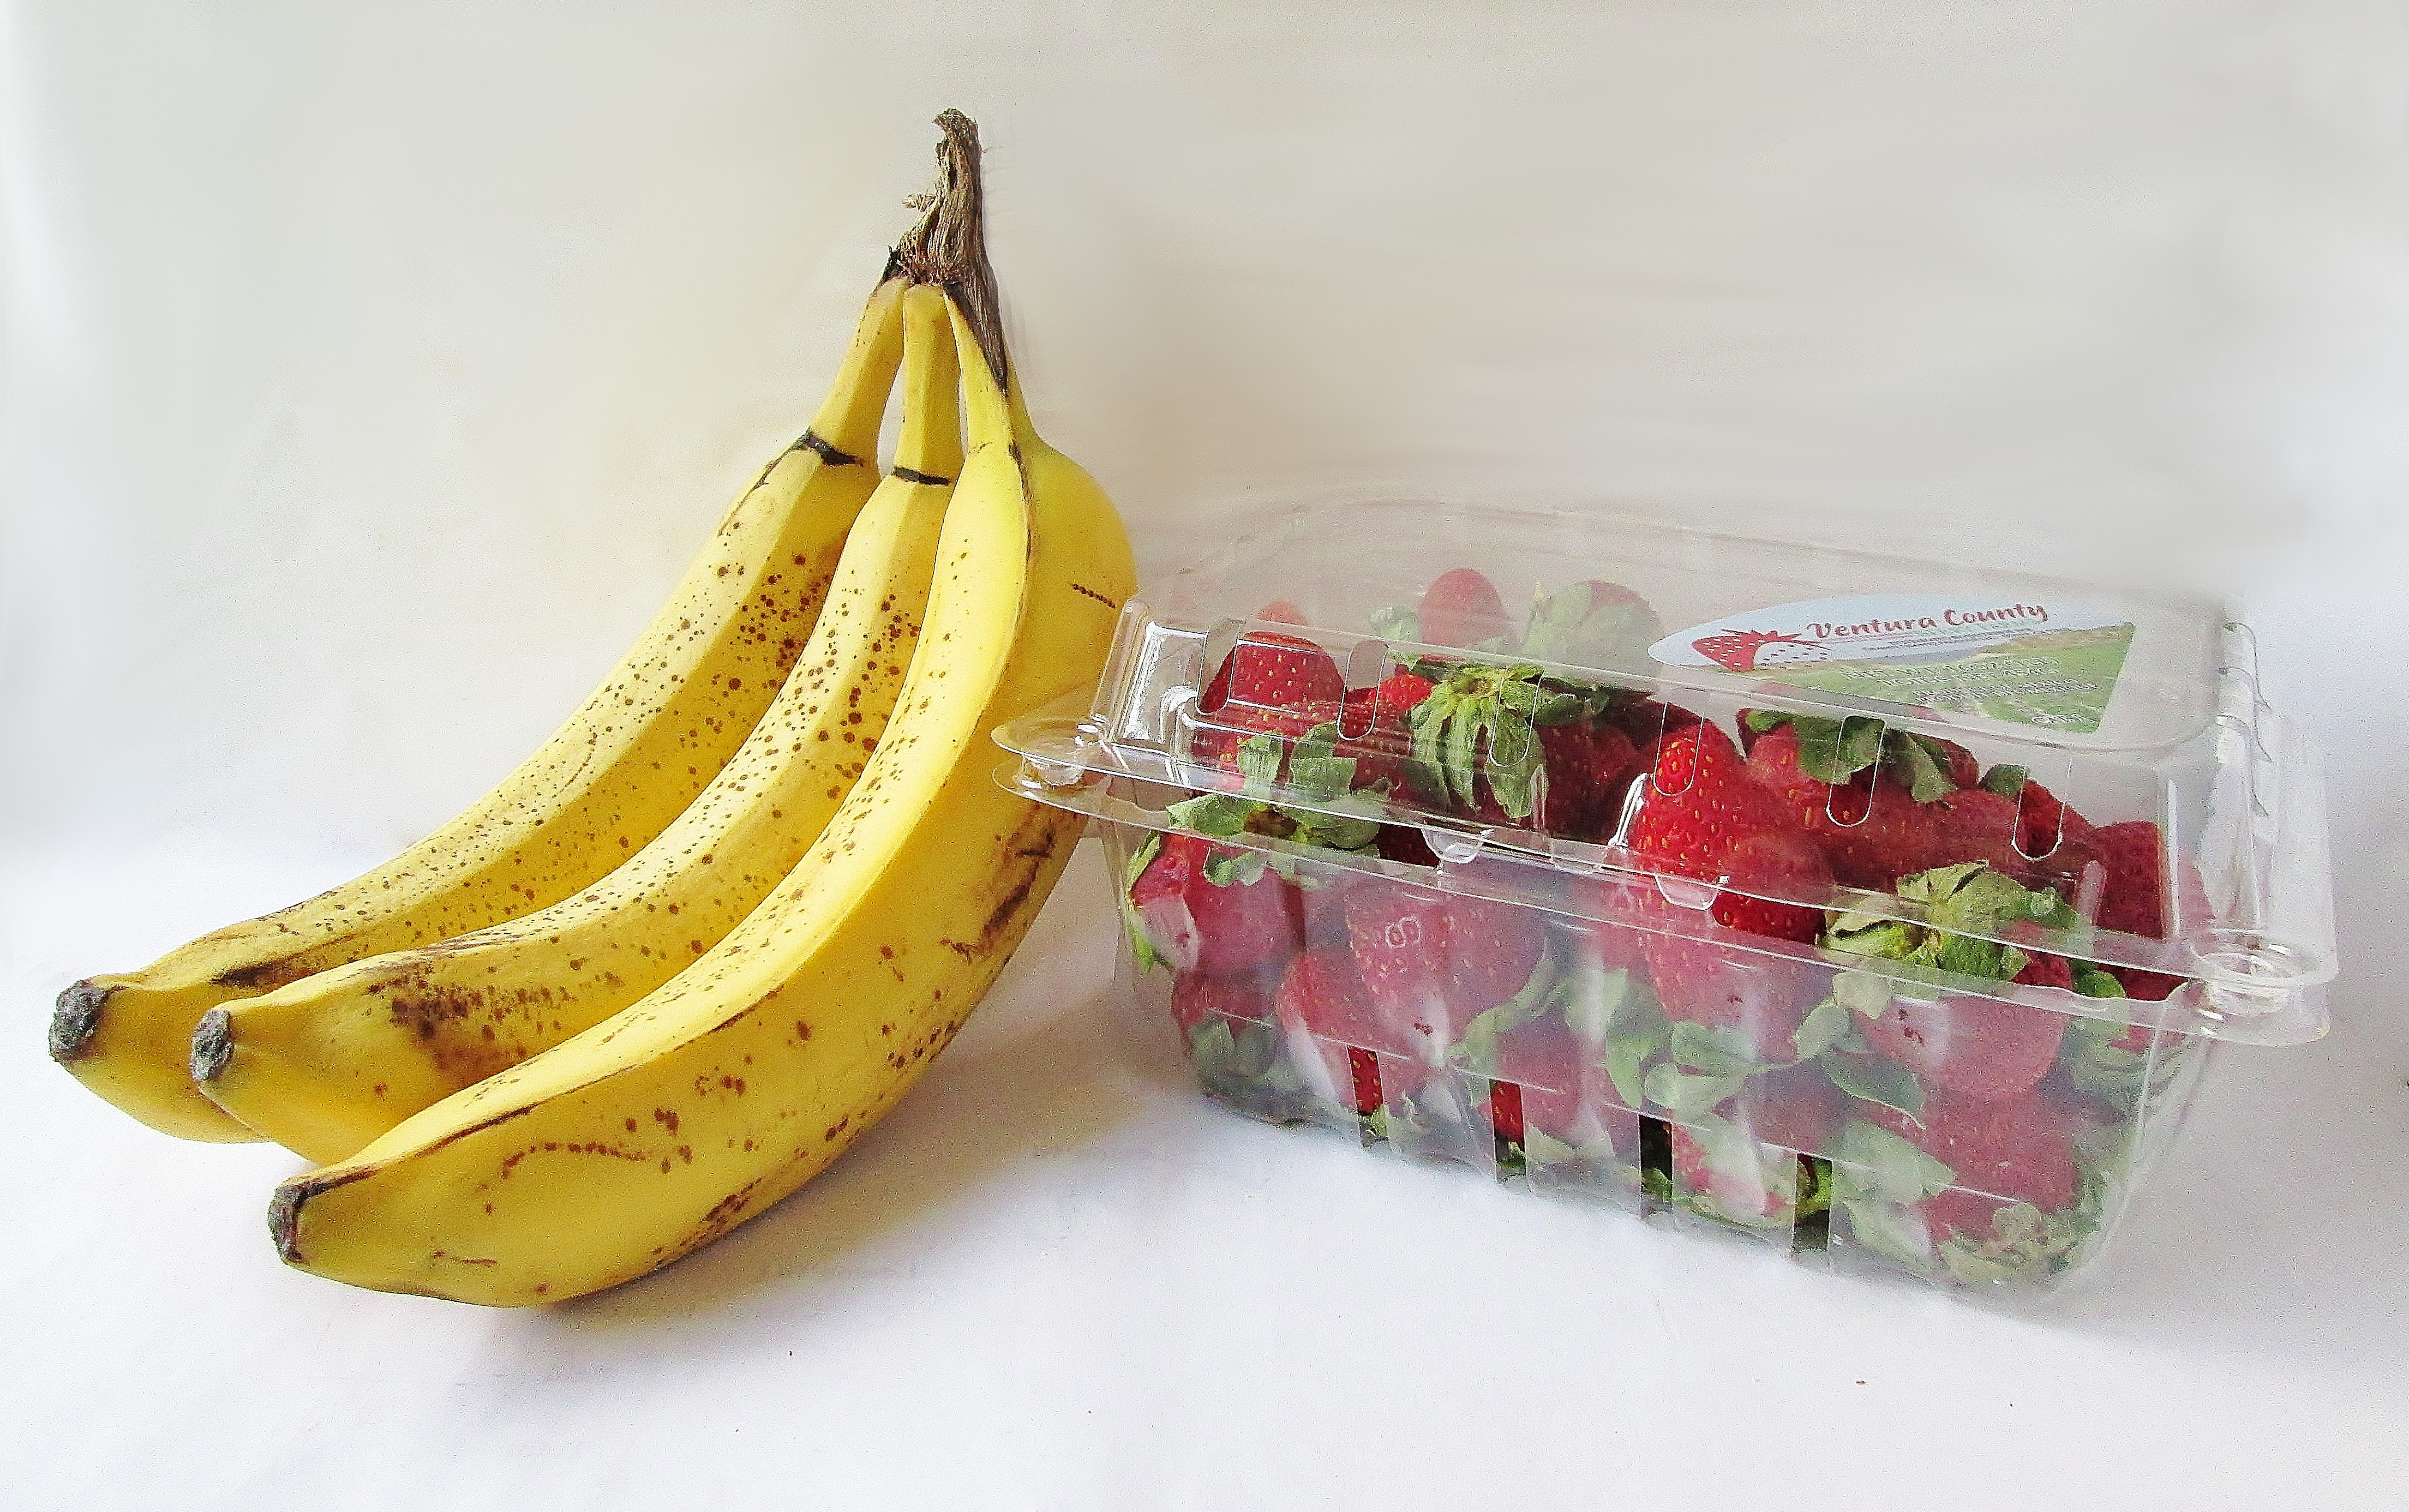 sabriel-dried-fruit-strawberries-bananas-ap-1349